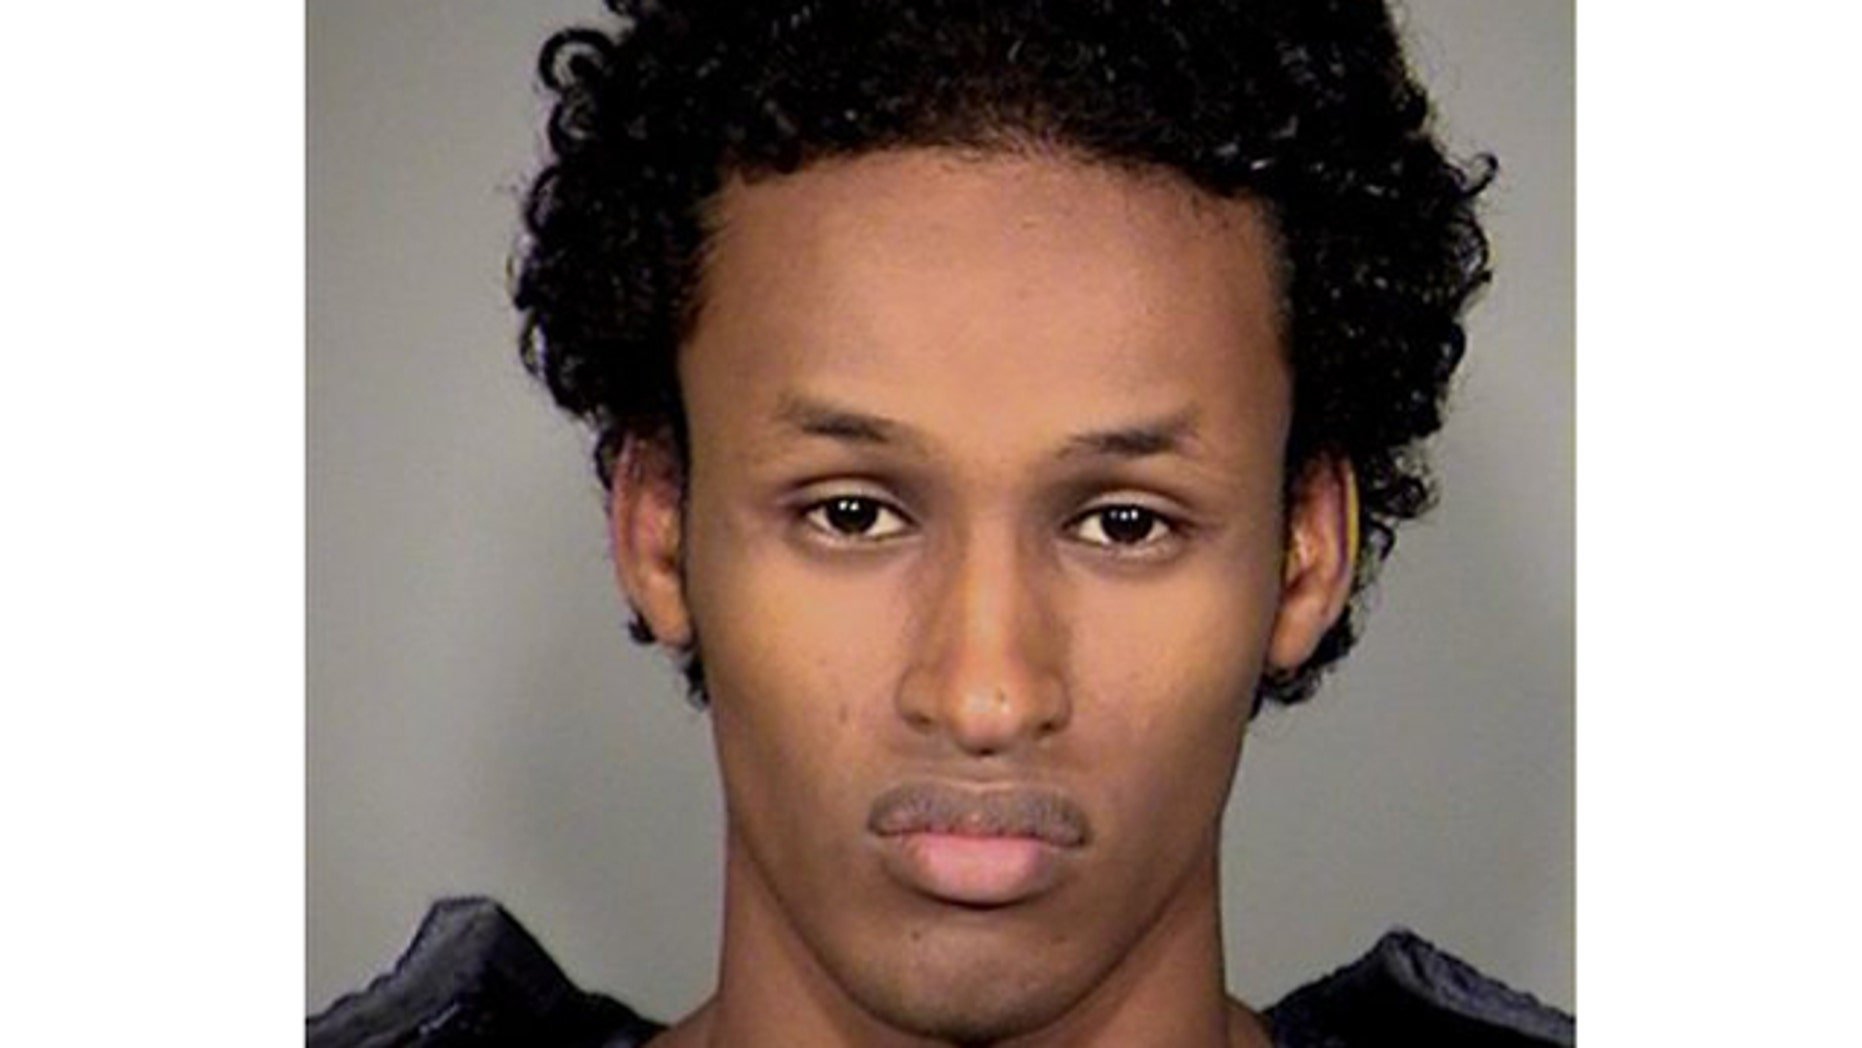 Nov. 27: Somali-born Mohamed Osman Mohamud, 19, was arrested in a sting operation as he tried blowing up a van full of what he believed were explosives at a crowded Christmas tree lighting ceremony, federal authorities said.